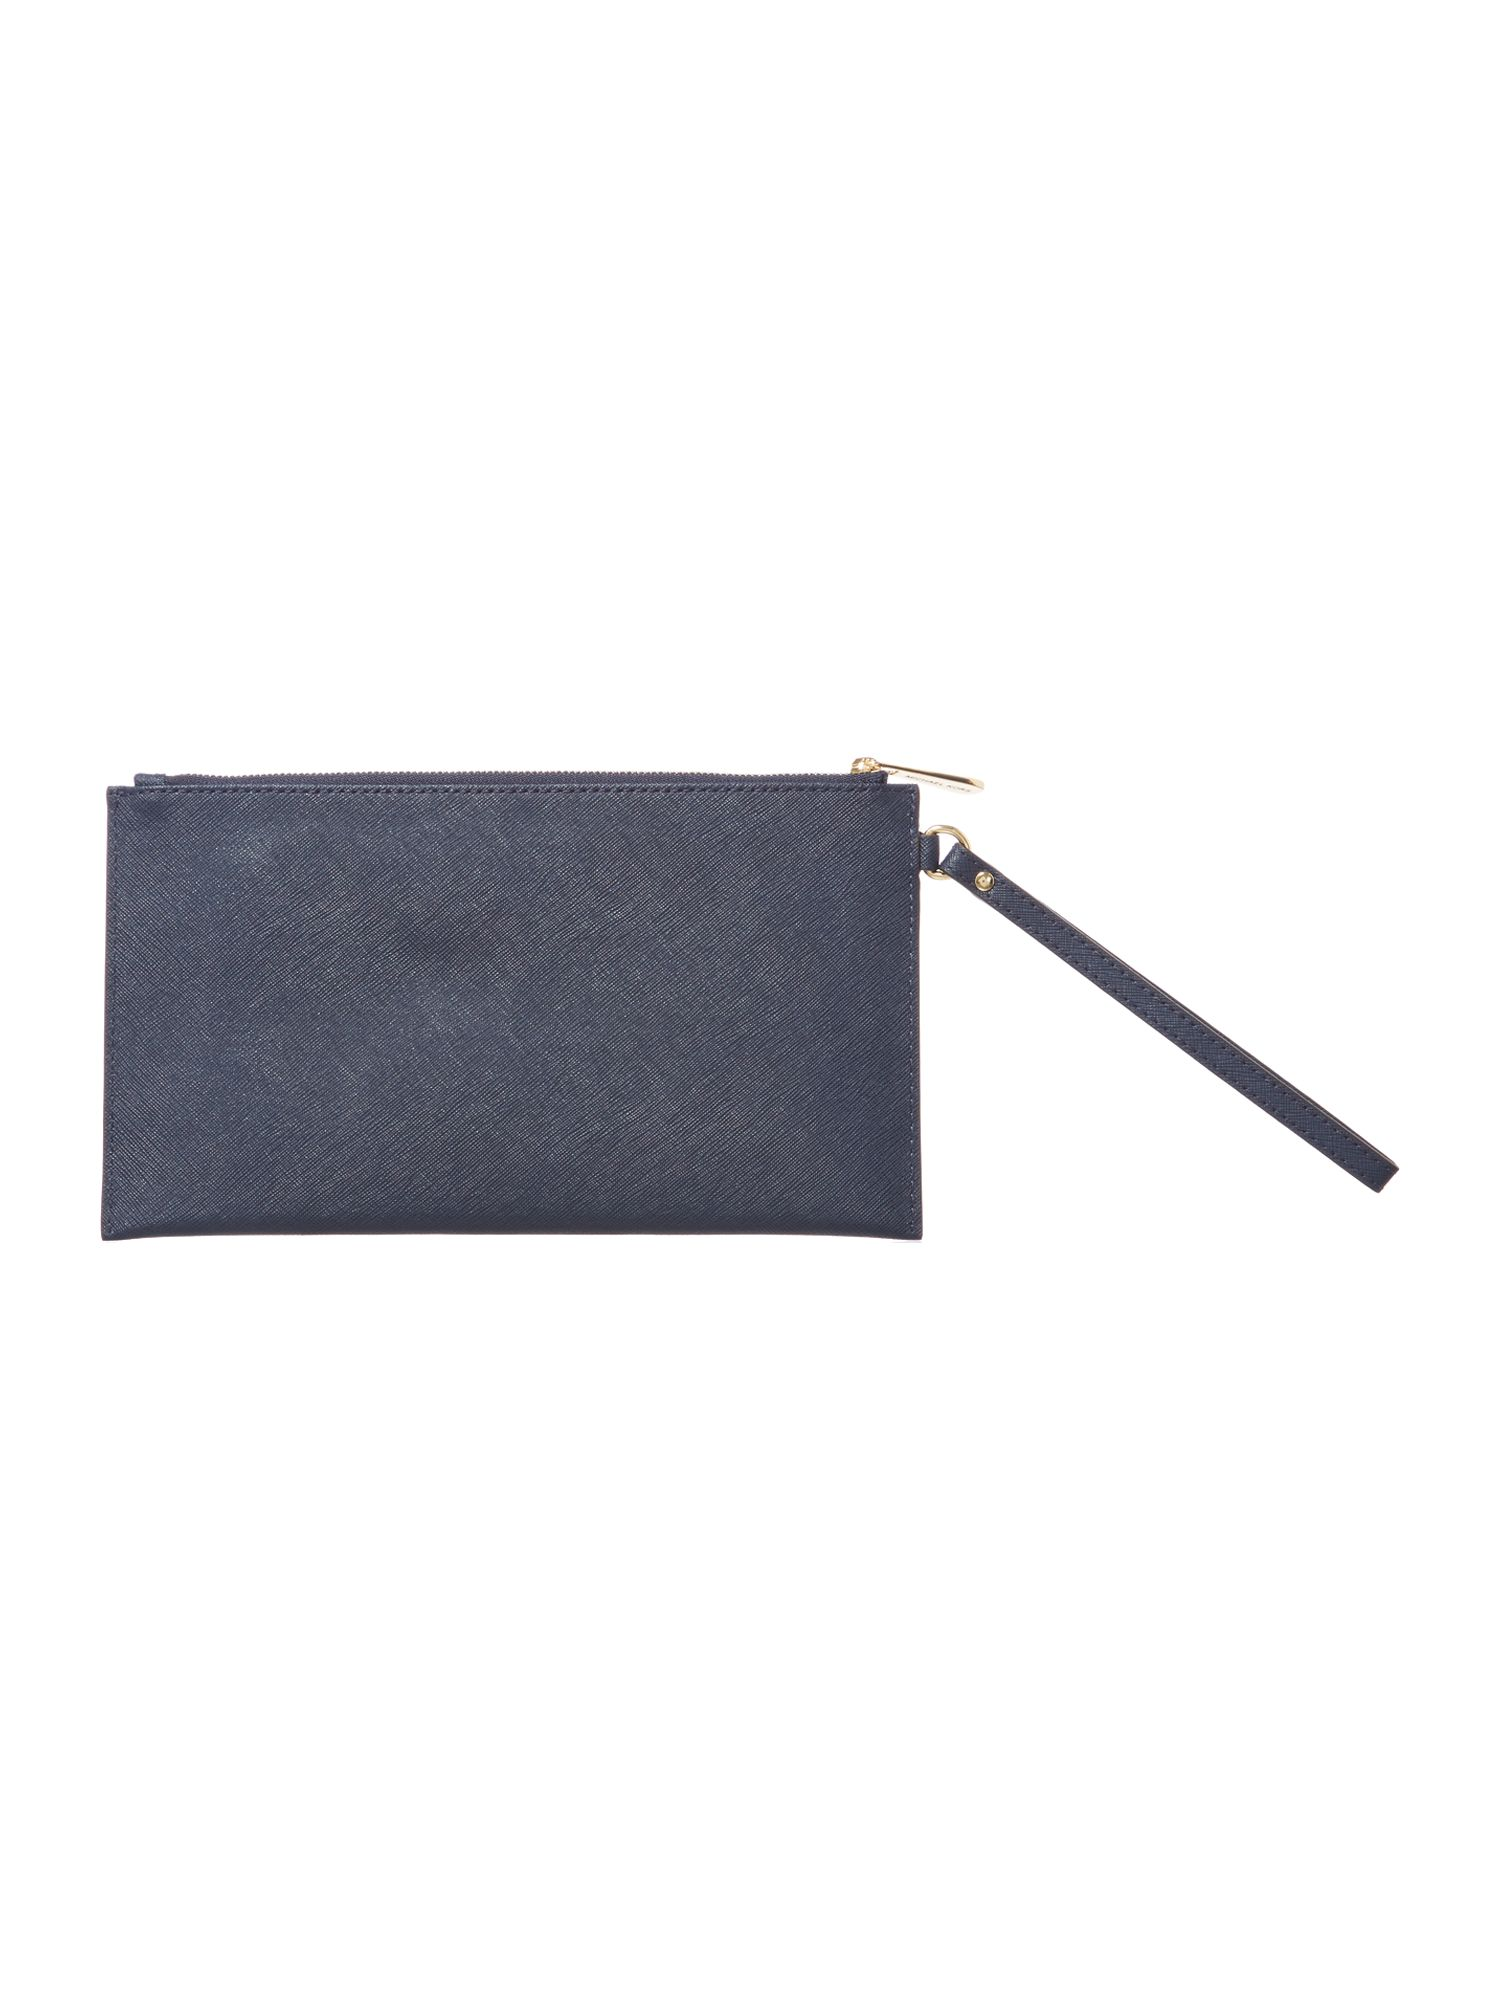 Saffiano navy zip top clutch bag